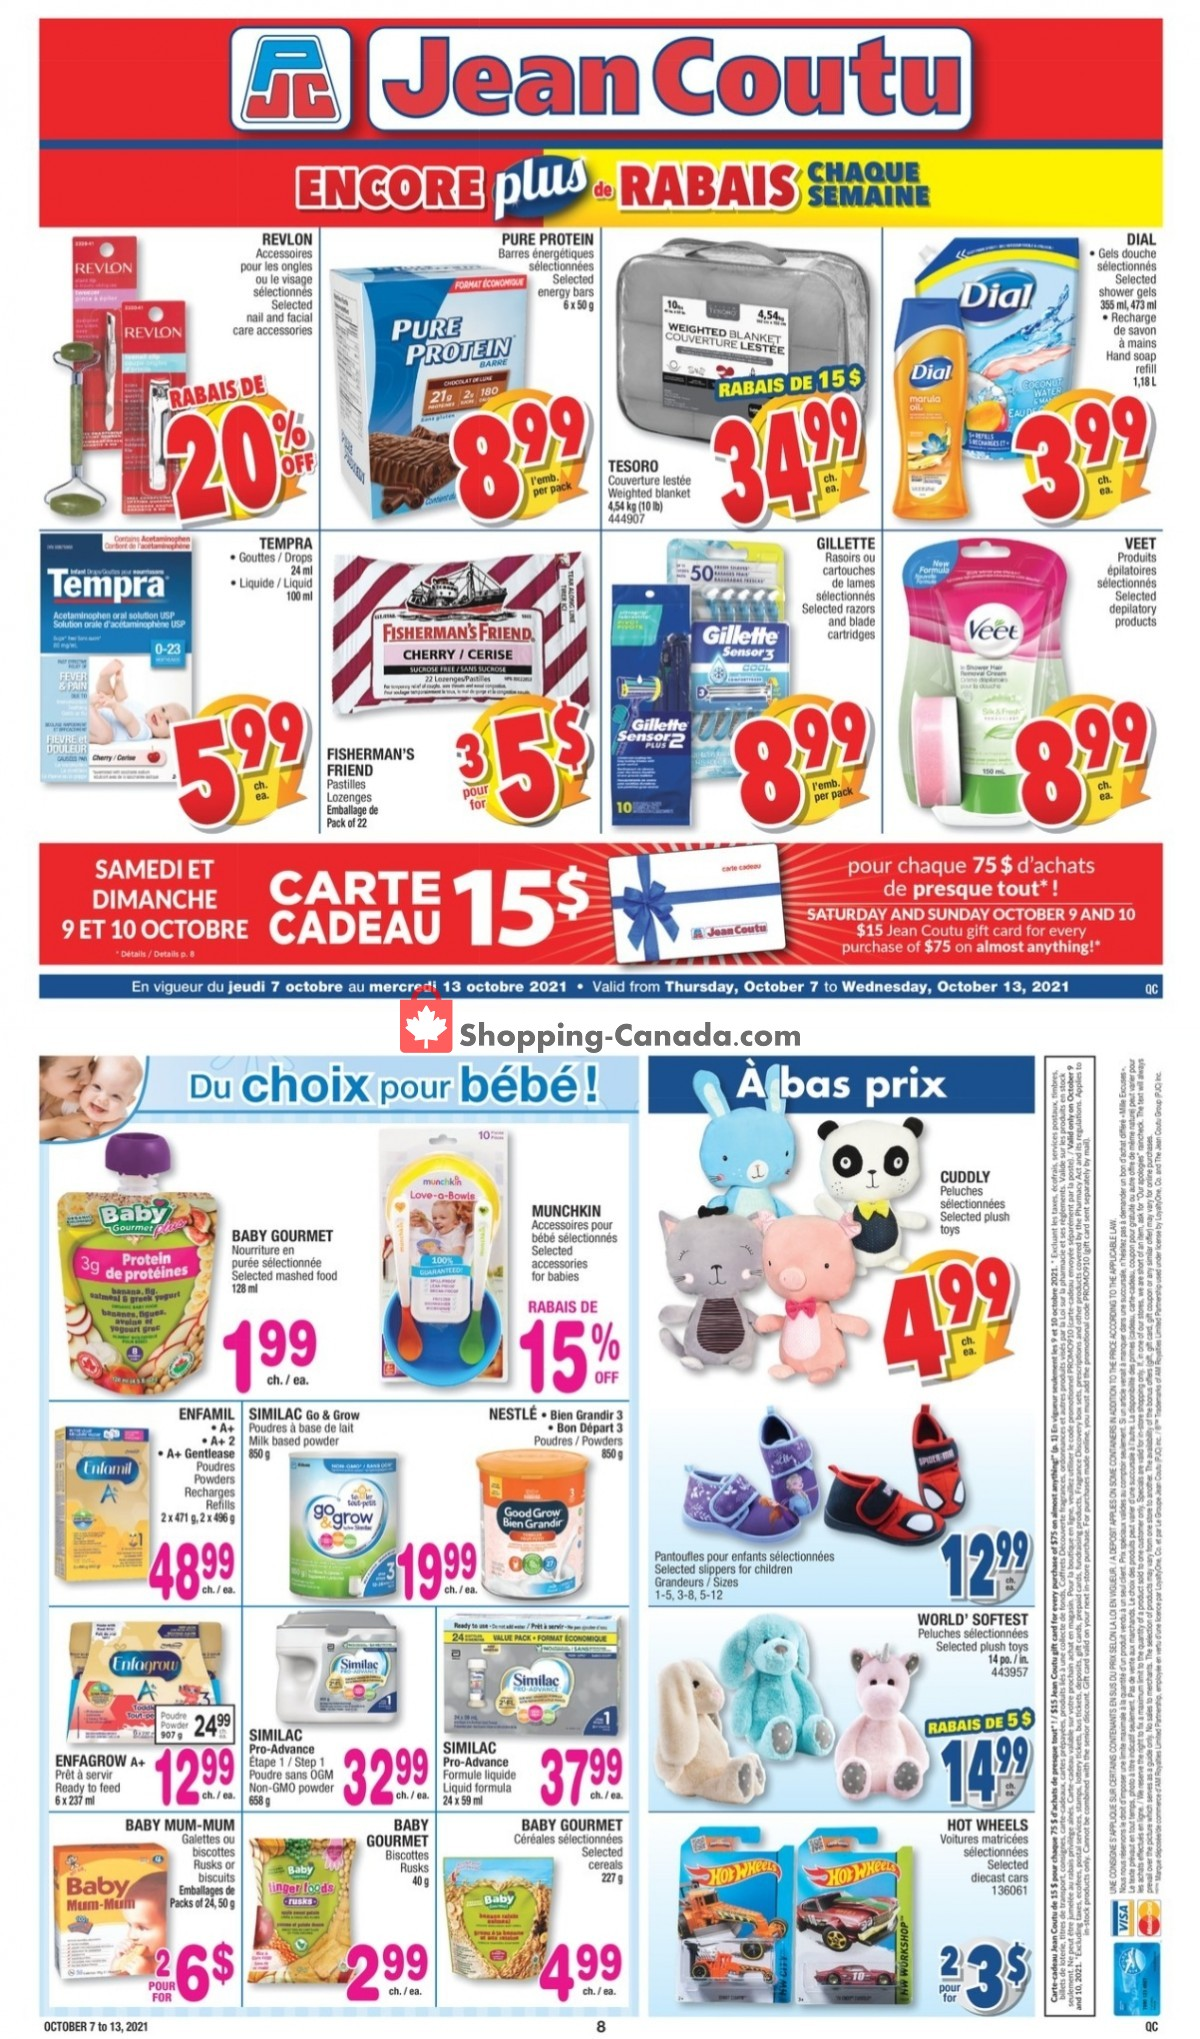 Flyer Jean Coutu Pharmacy Canada - from Thursday October 7, 2021 to Wednesday October 13, 2021